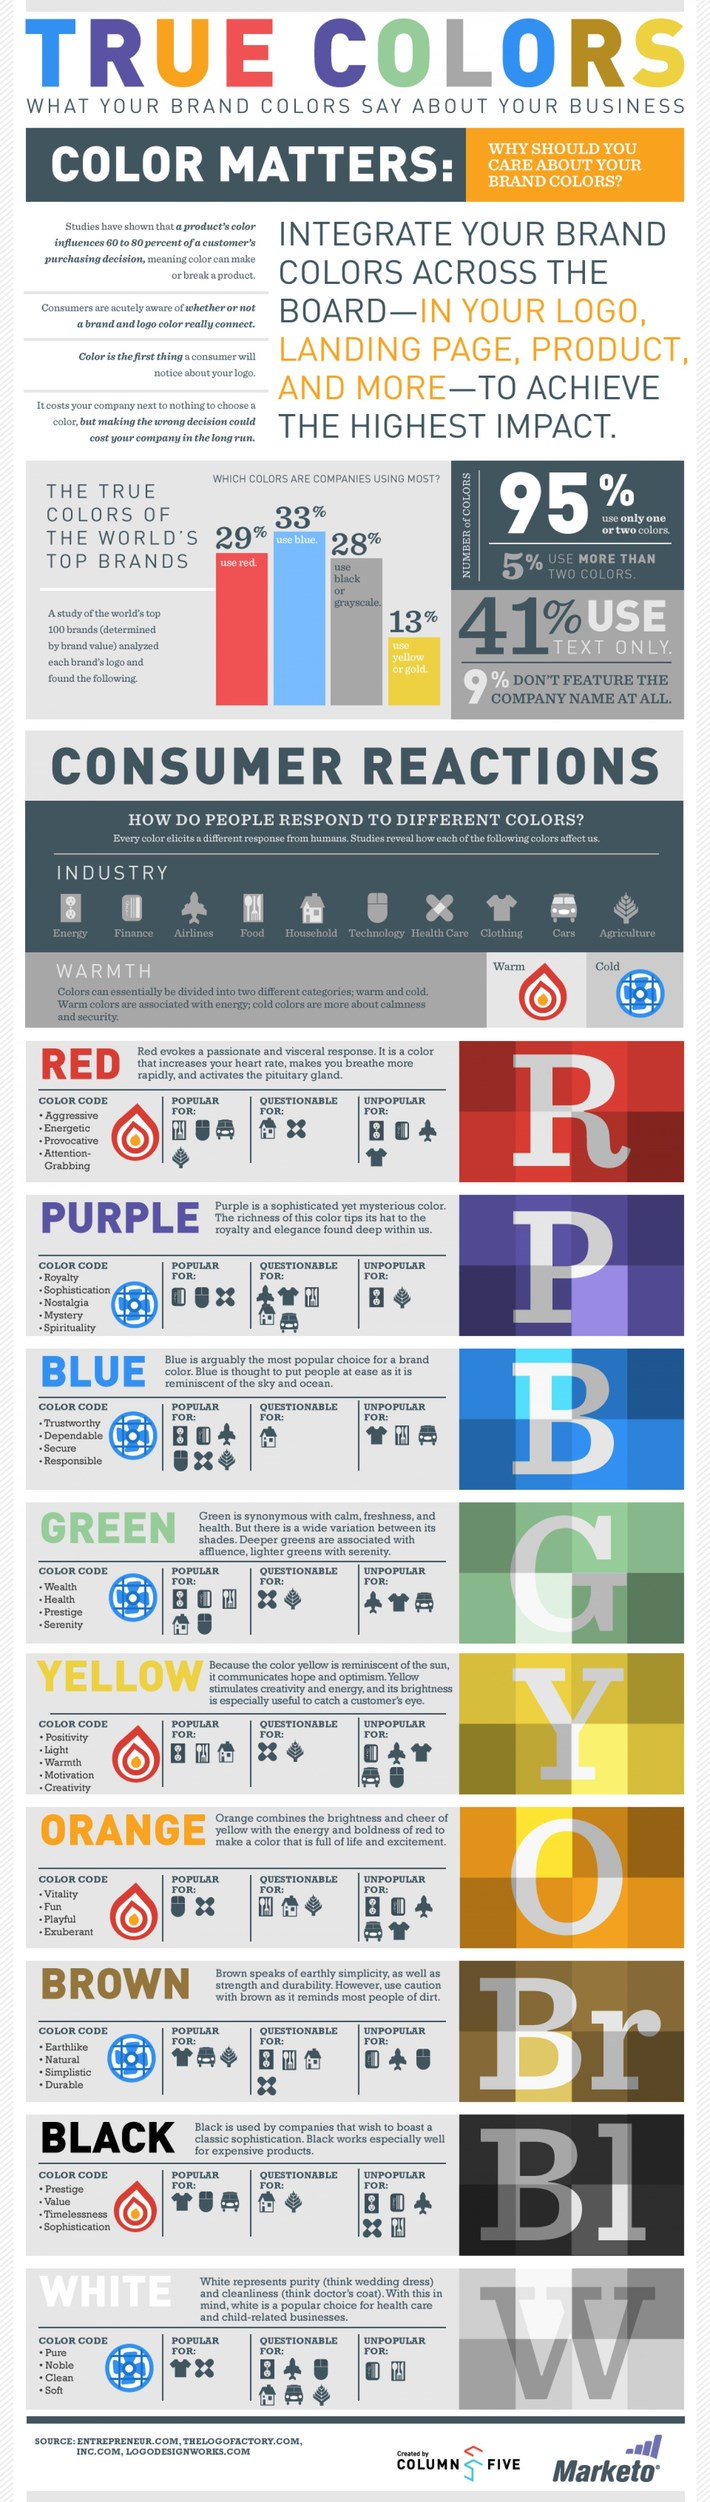 true-colors-what-your-brand-colors-say-about-your-business